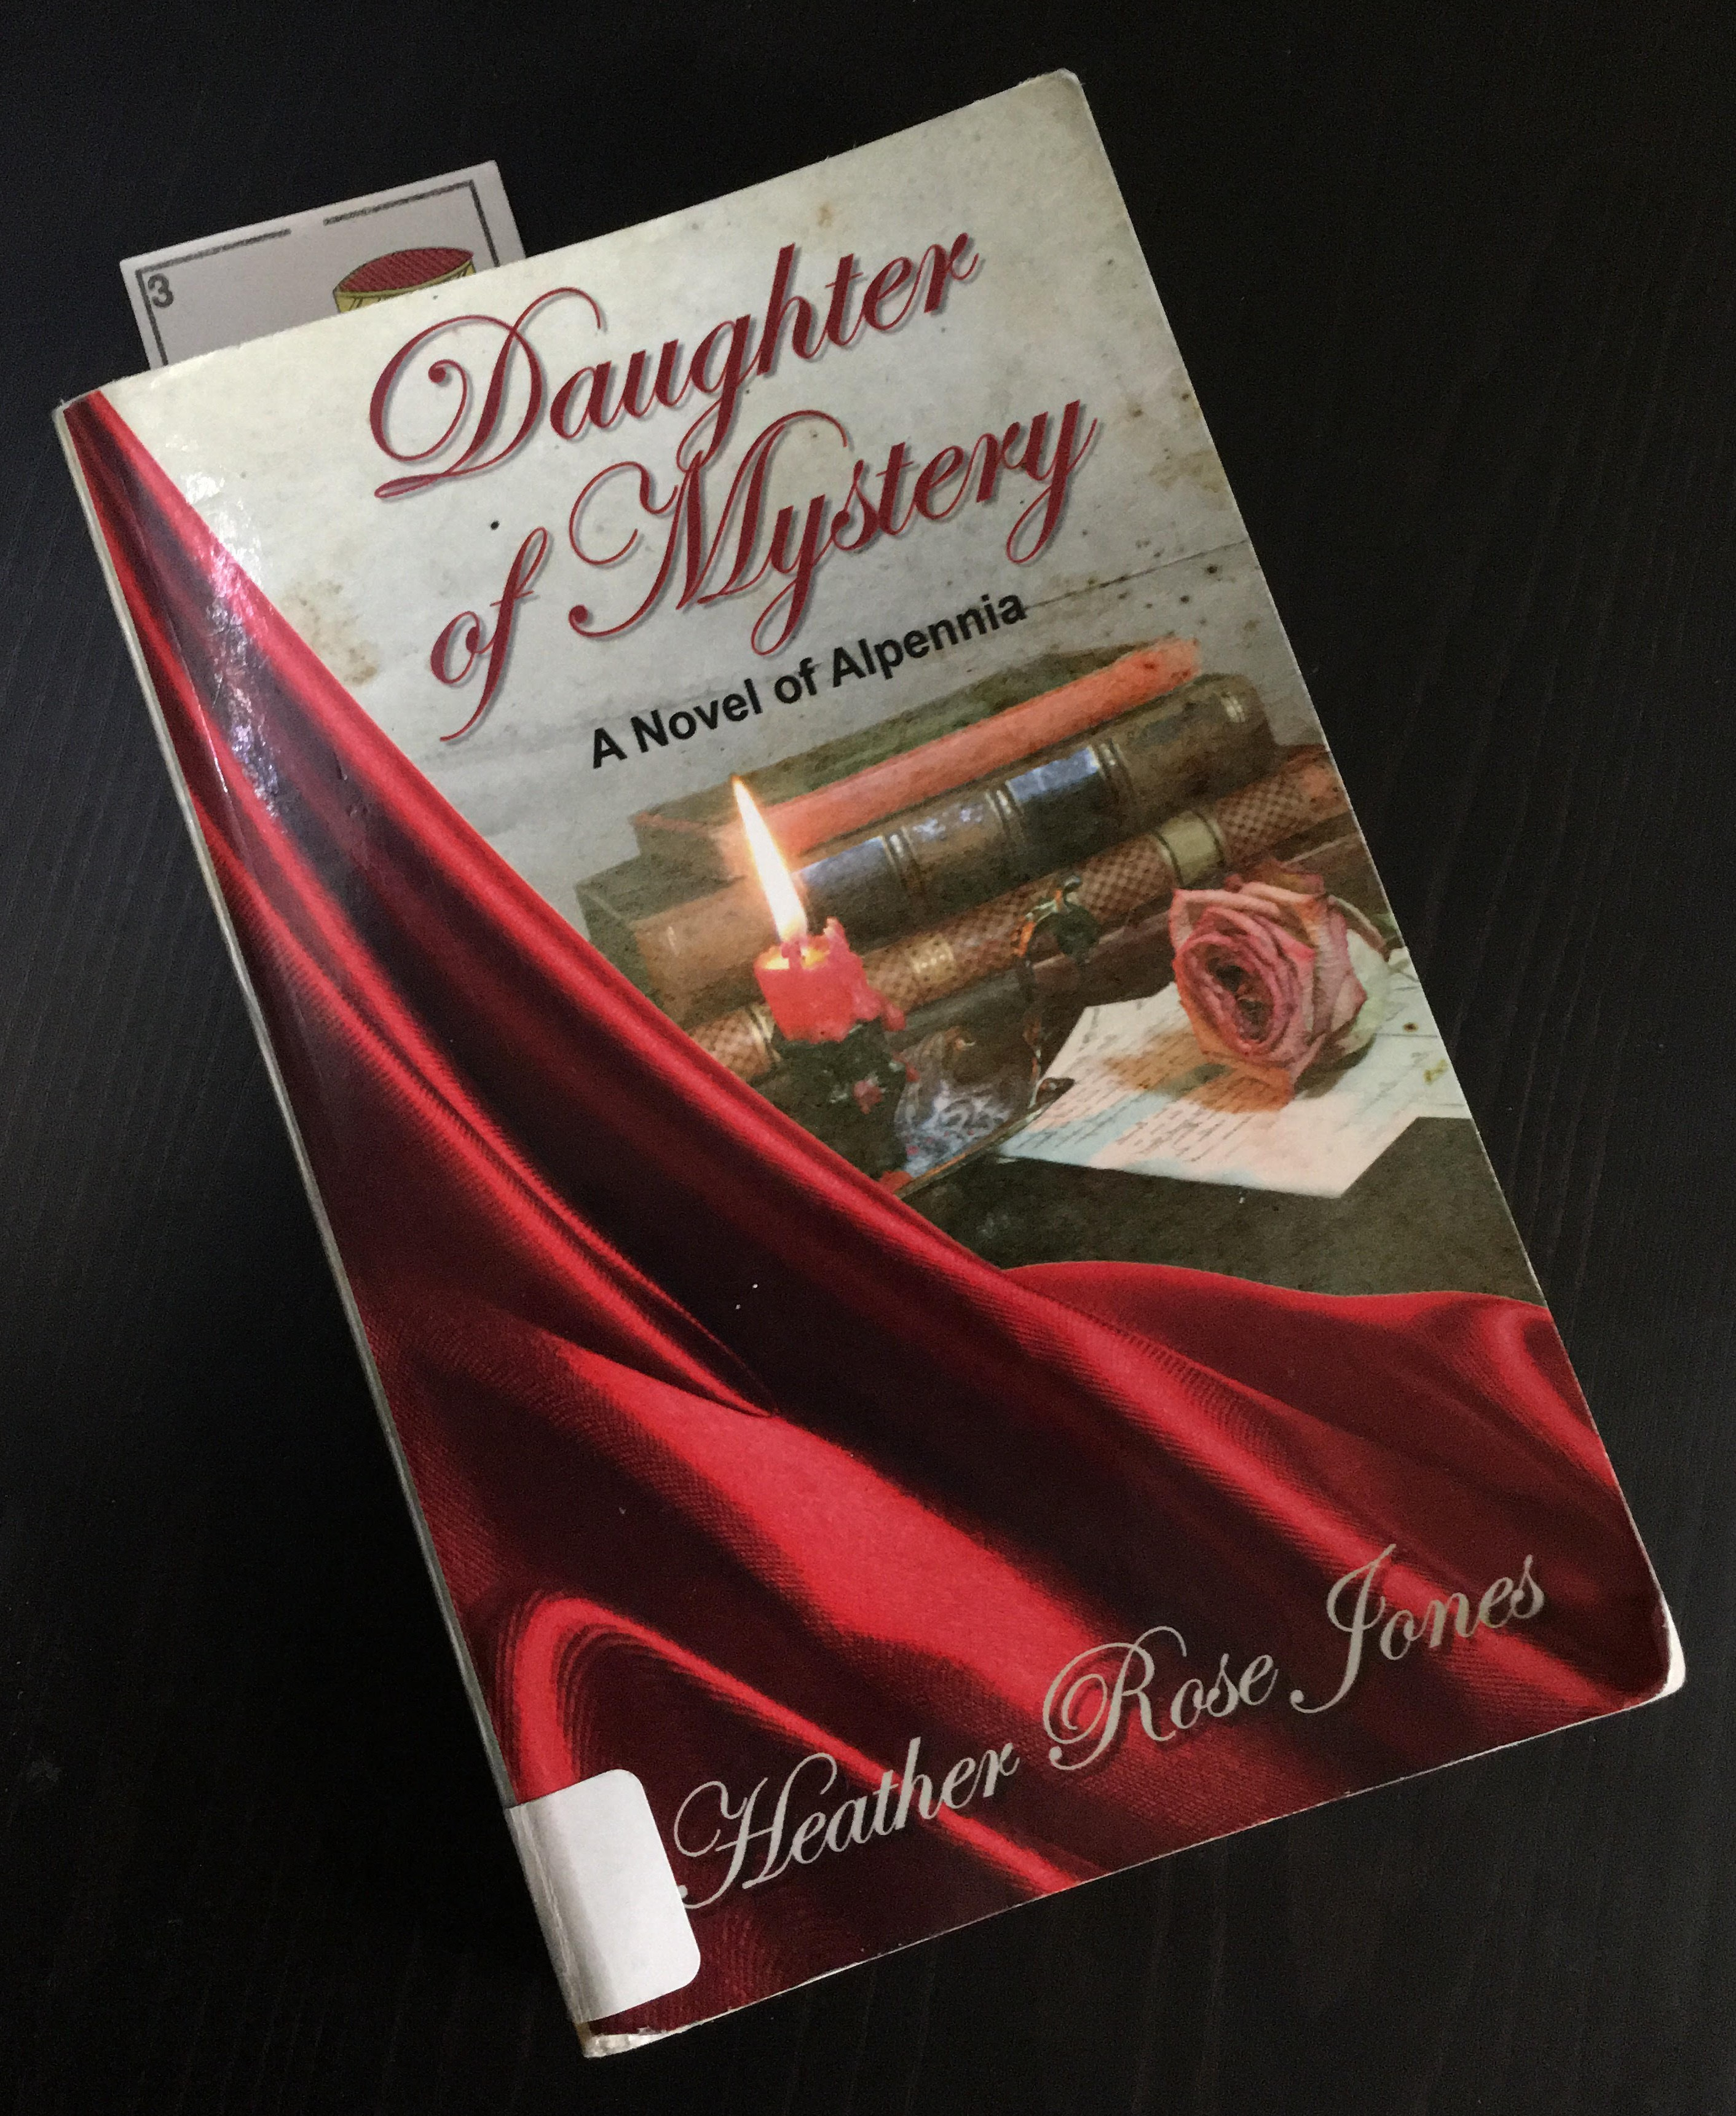 """Cover of """"Daughter of Mystery"""" by Heather Rose Jones"""